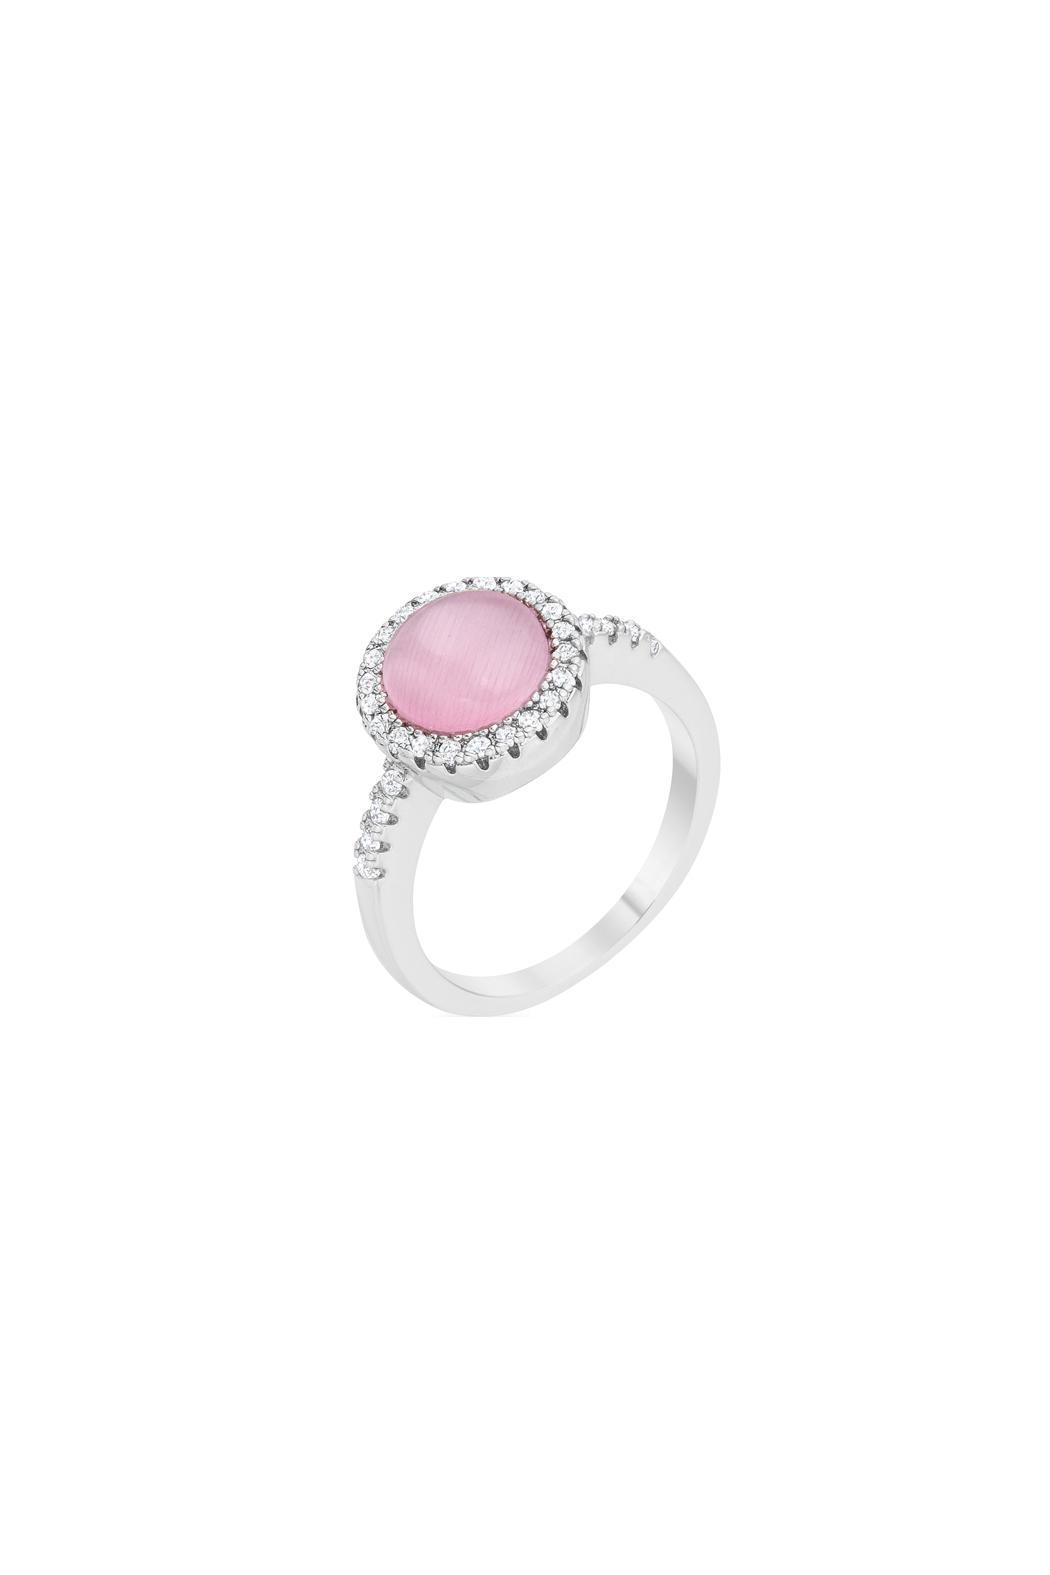 Wild Lilies Jewelry  Pink Stone Ring - Main Image